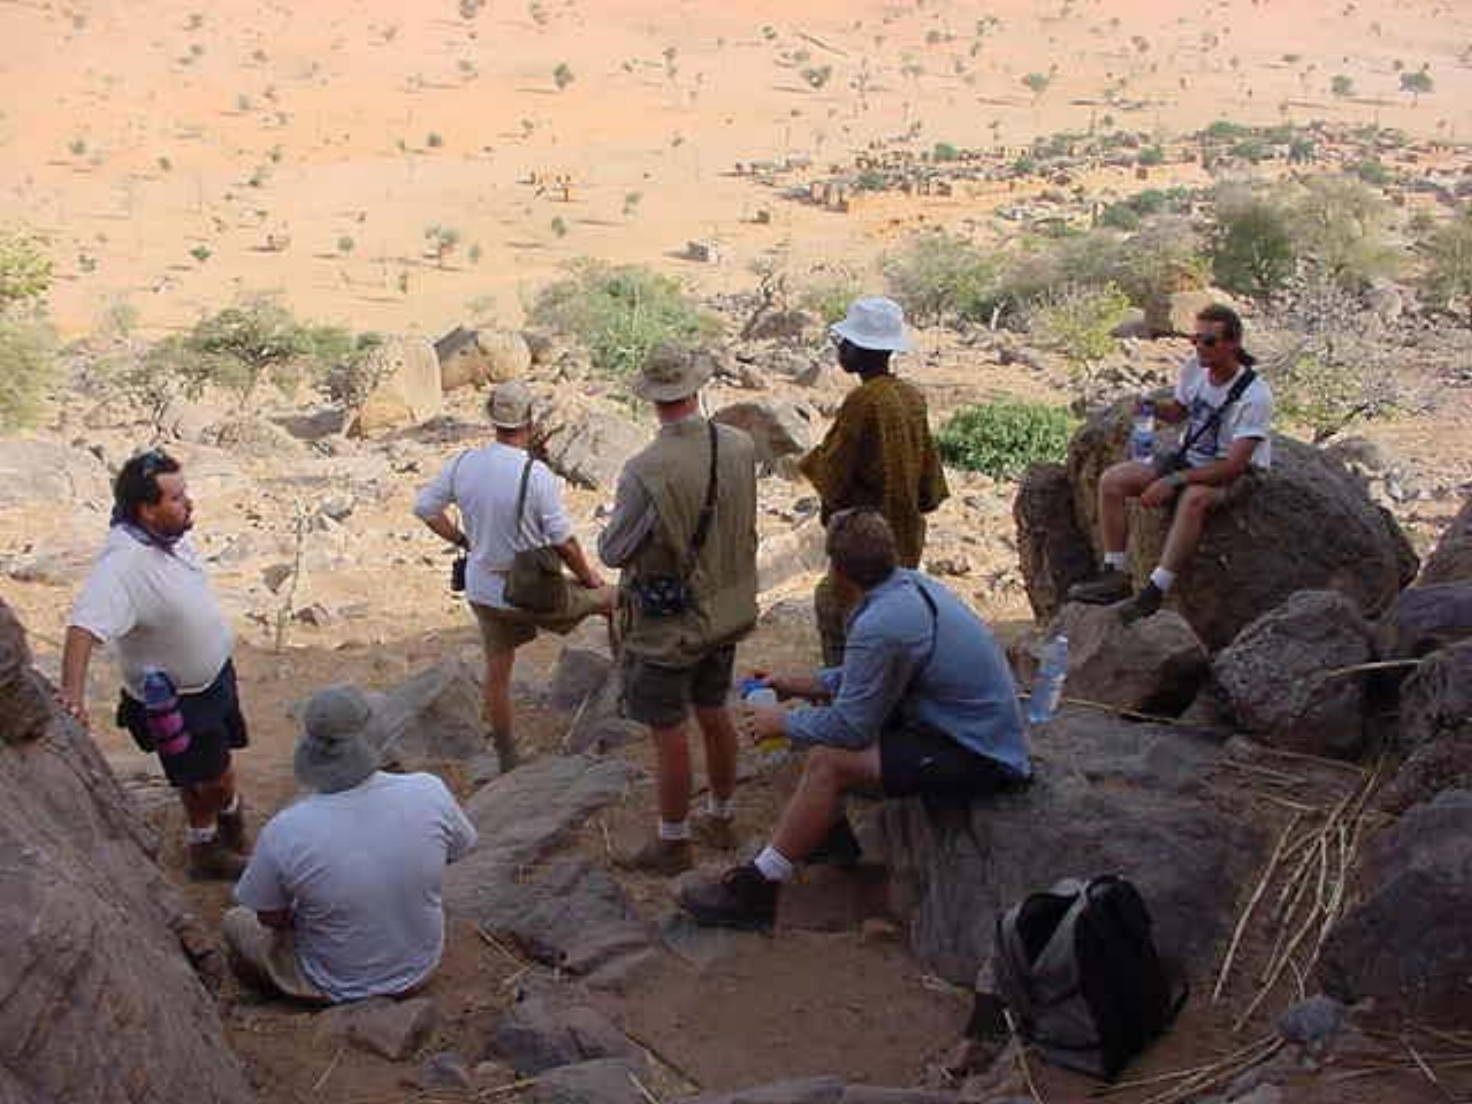 Drive The Globe Expedition team takes a break high above the Dogon Villages below